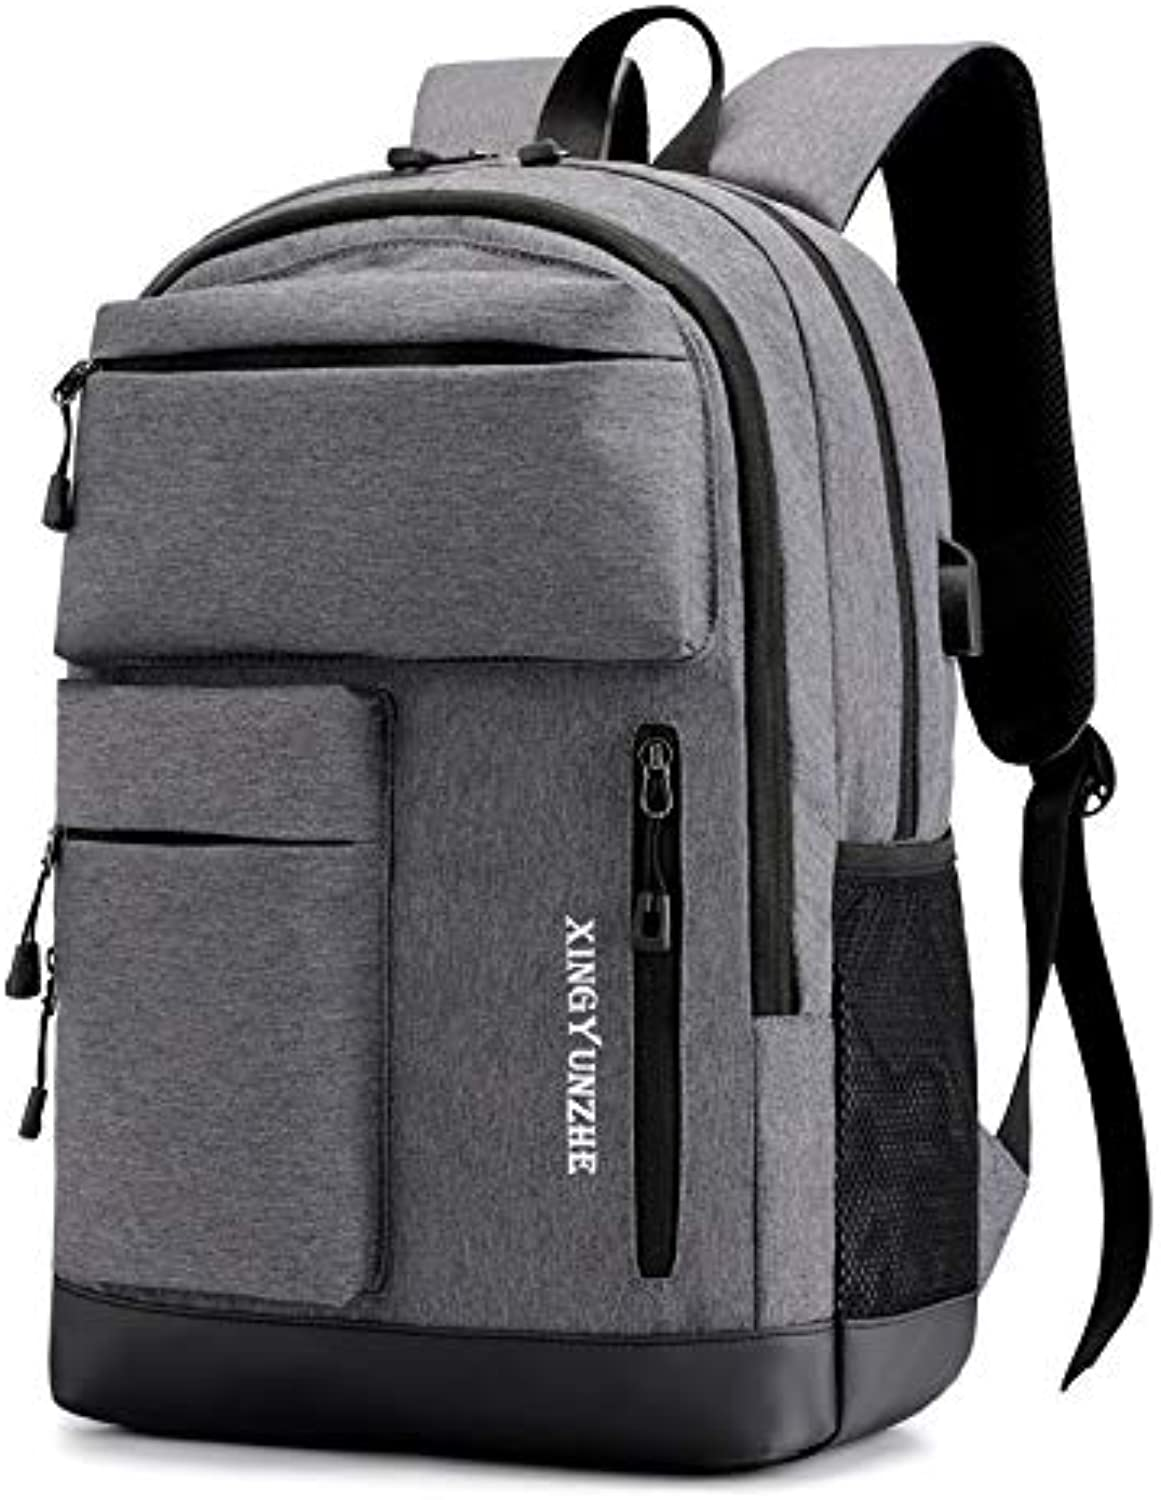 RYRYBH Fashion Casual Backpack Computer Multifunction USB Backpack Outdoor Backpack Student Bag backpack (color   Grey)